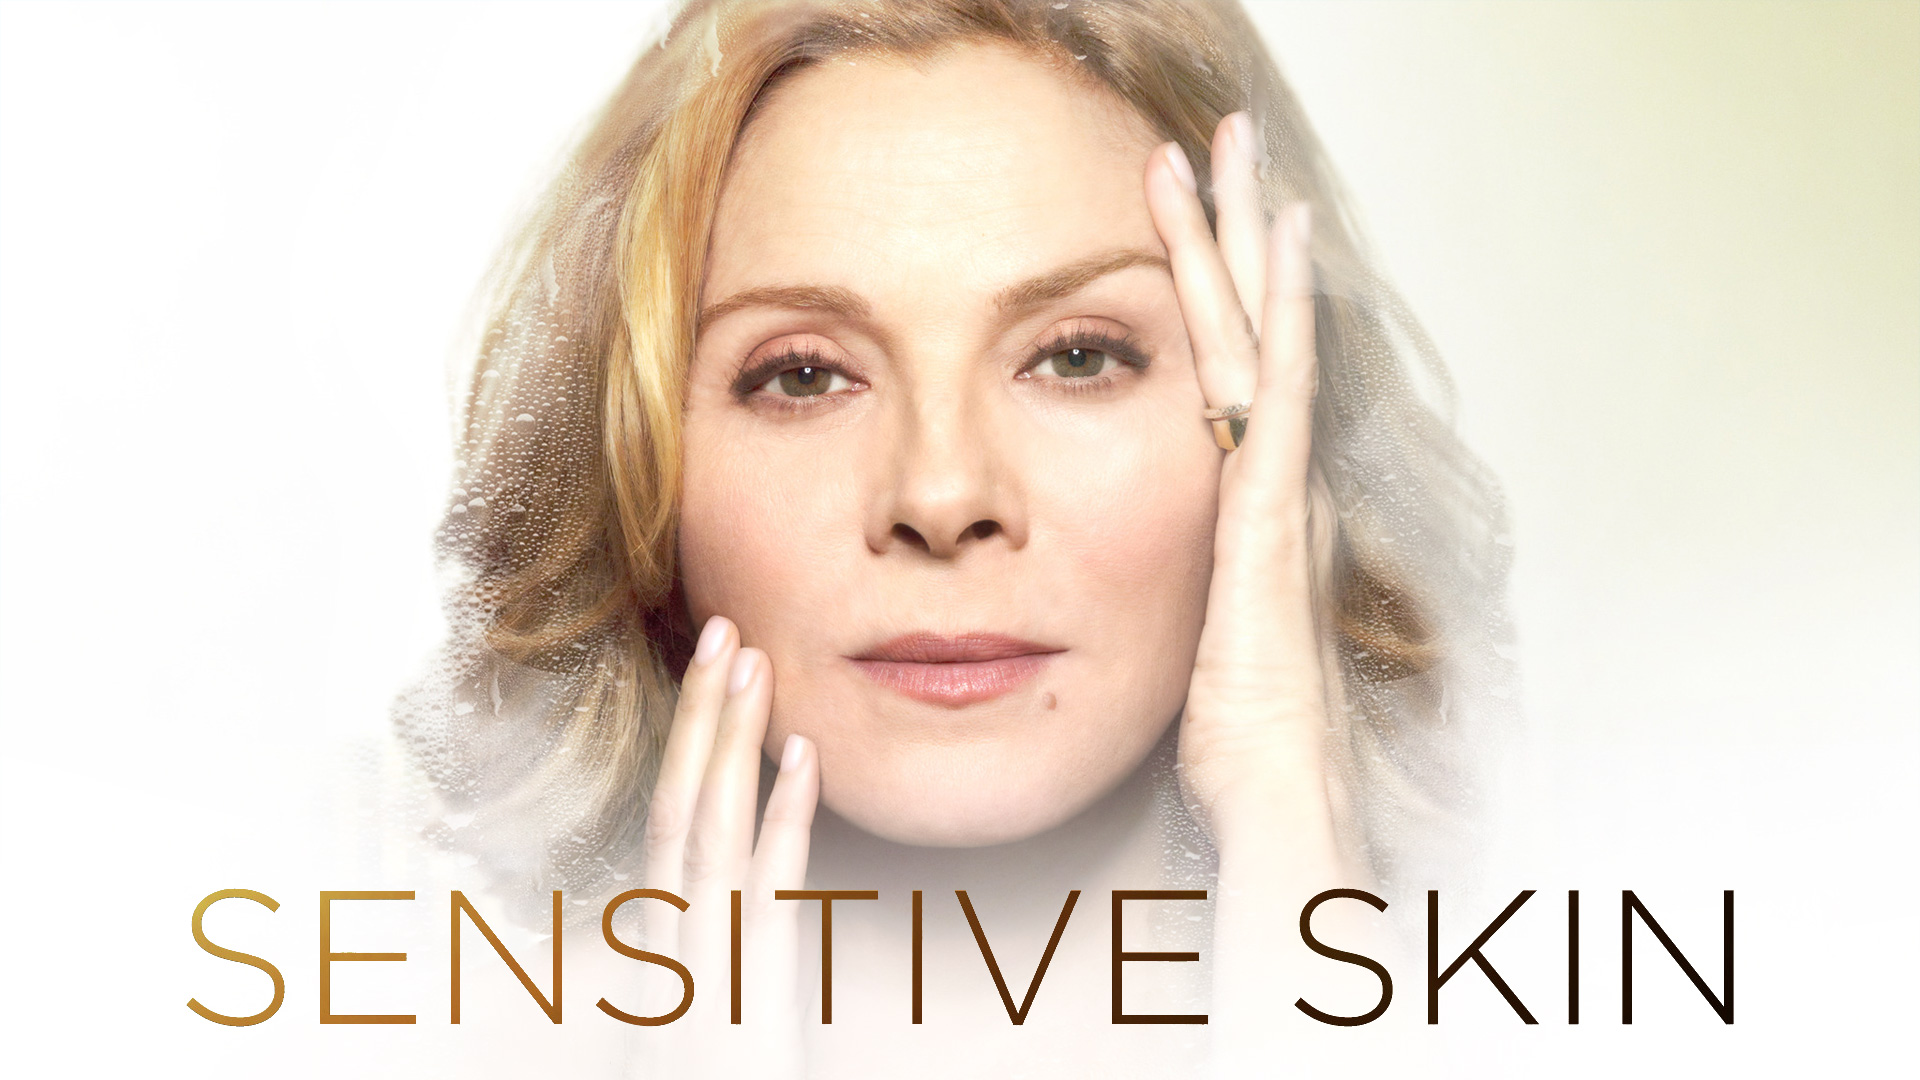 Sensitive Skin - Series 1